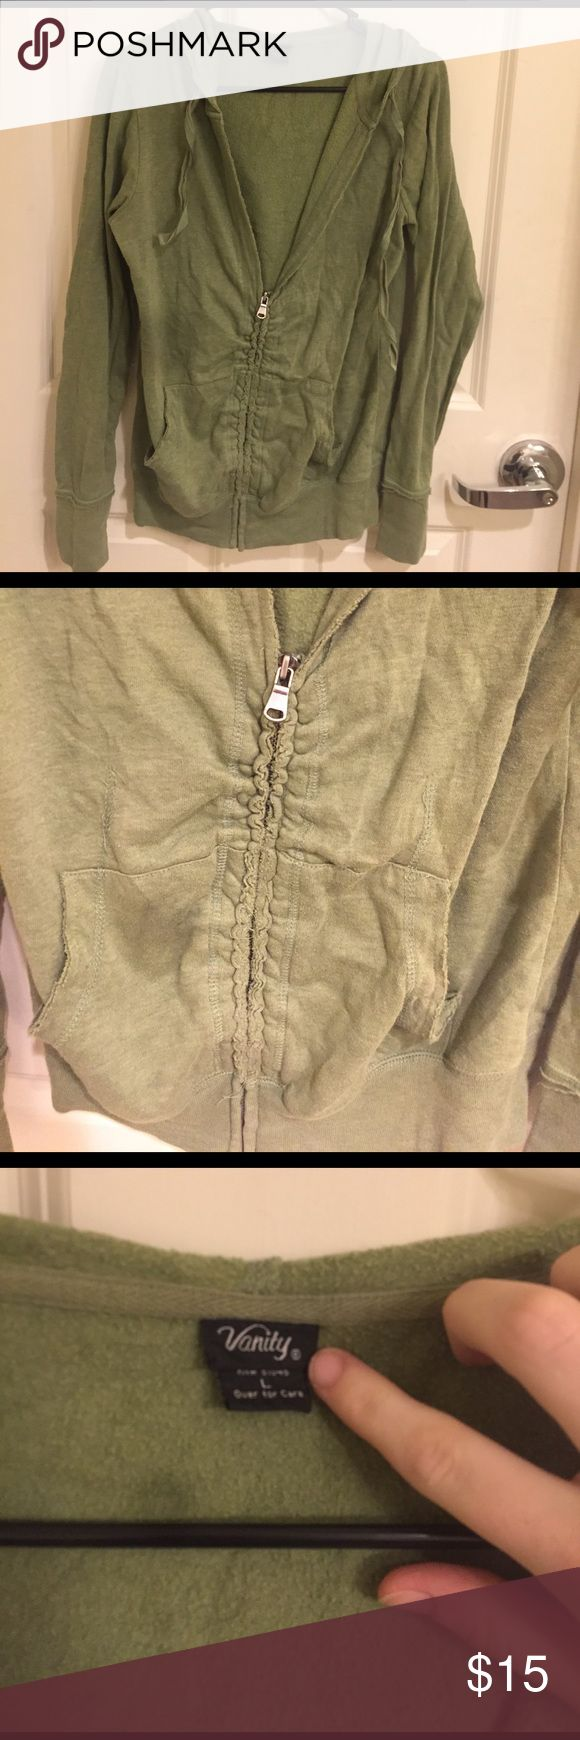 Green zip up jacket Green zip up jacket size L. Lightly used, the brand is Vanity, not Free People but this looks like a free people jacket I own so I put it here. Comfy and light, a great staple to any closet Free People Jackets & Coats